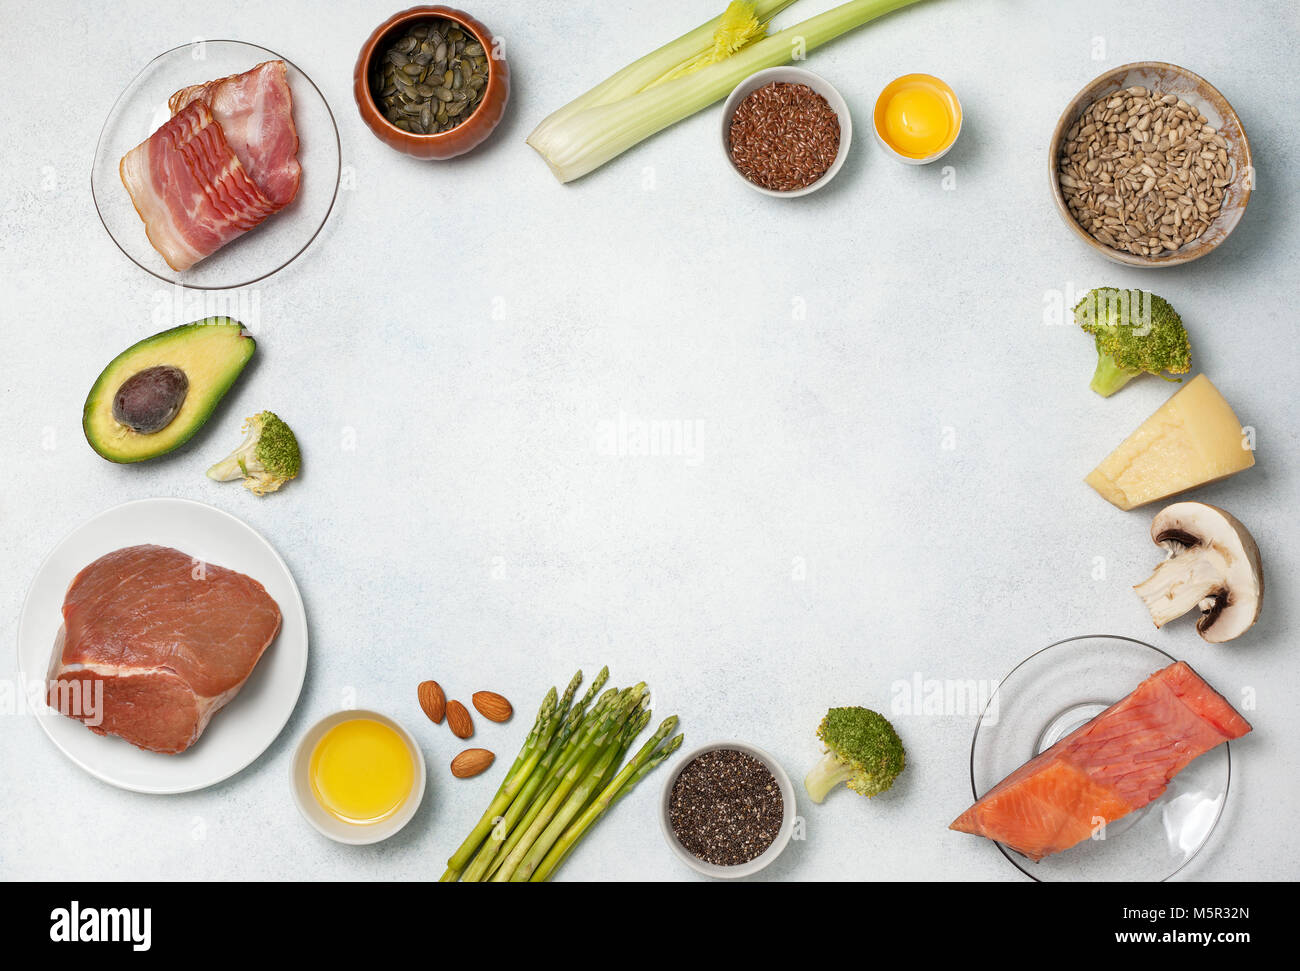 Ketogenic stock photos ketogenic stock images alamy for Fish and broccoli diet